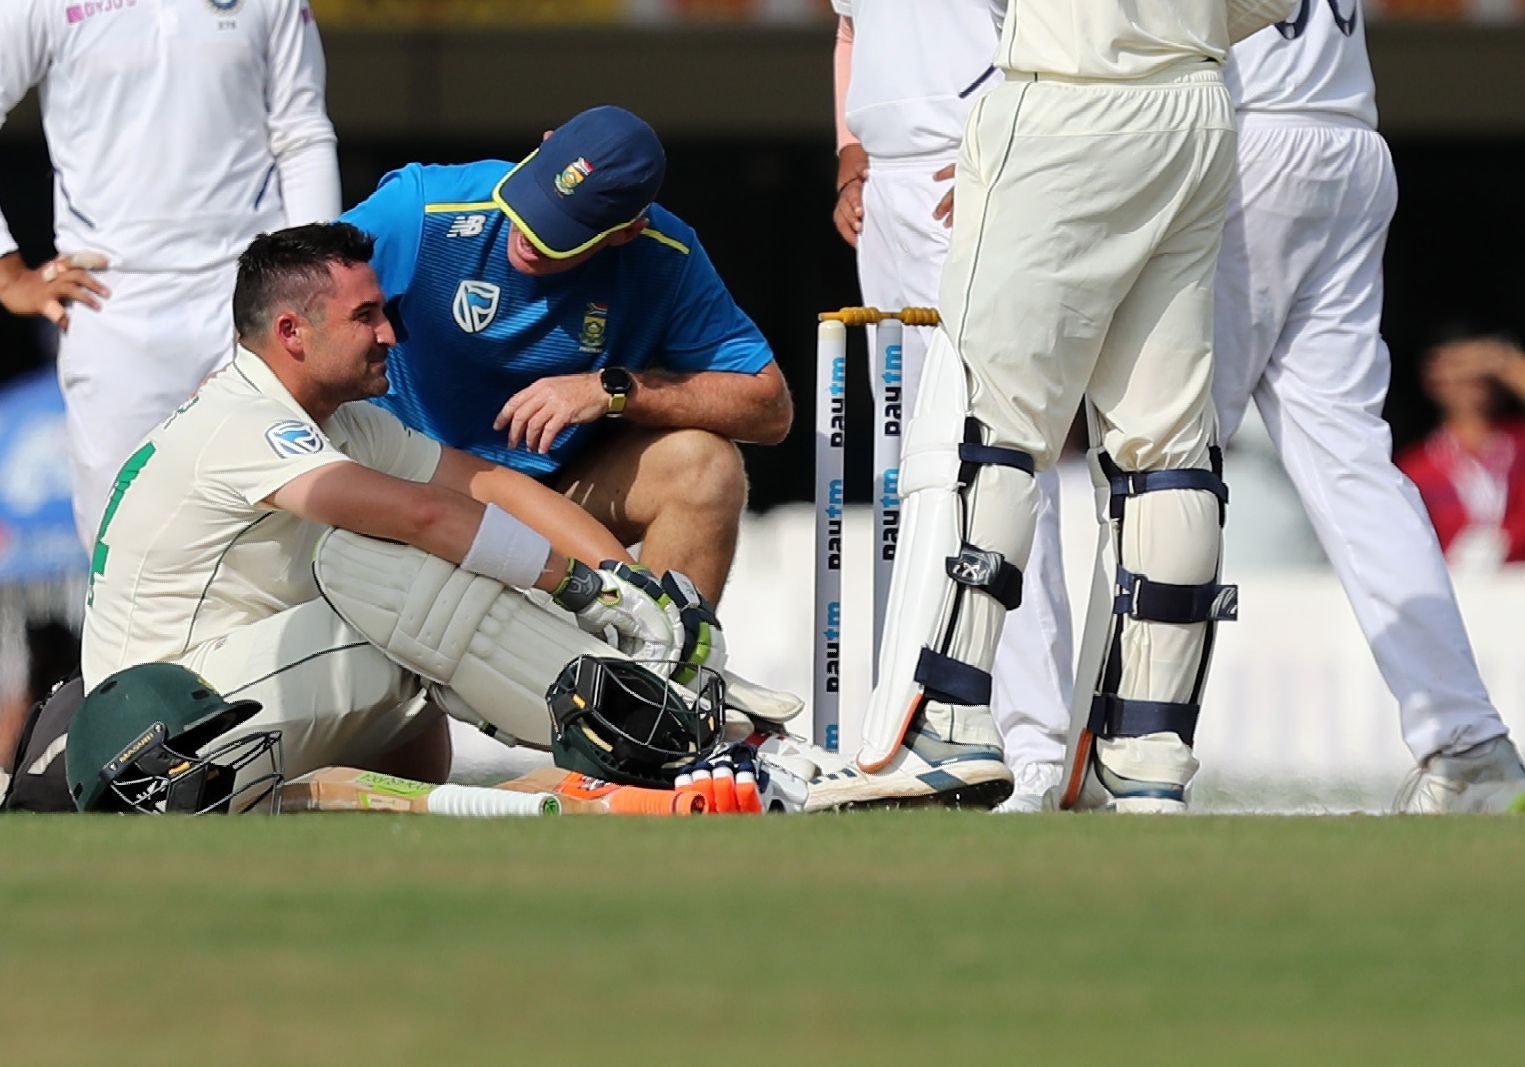 India vs SA: De Bruyn Comes in as Concussion Substitute for Elgar